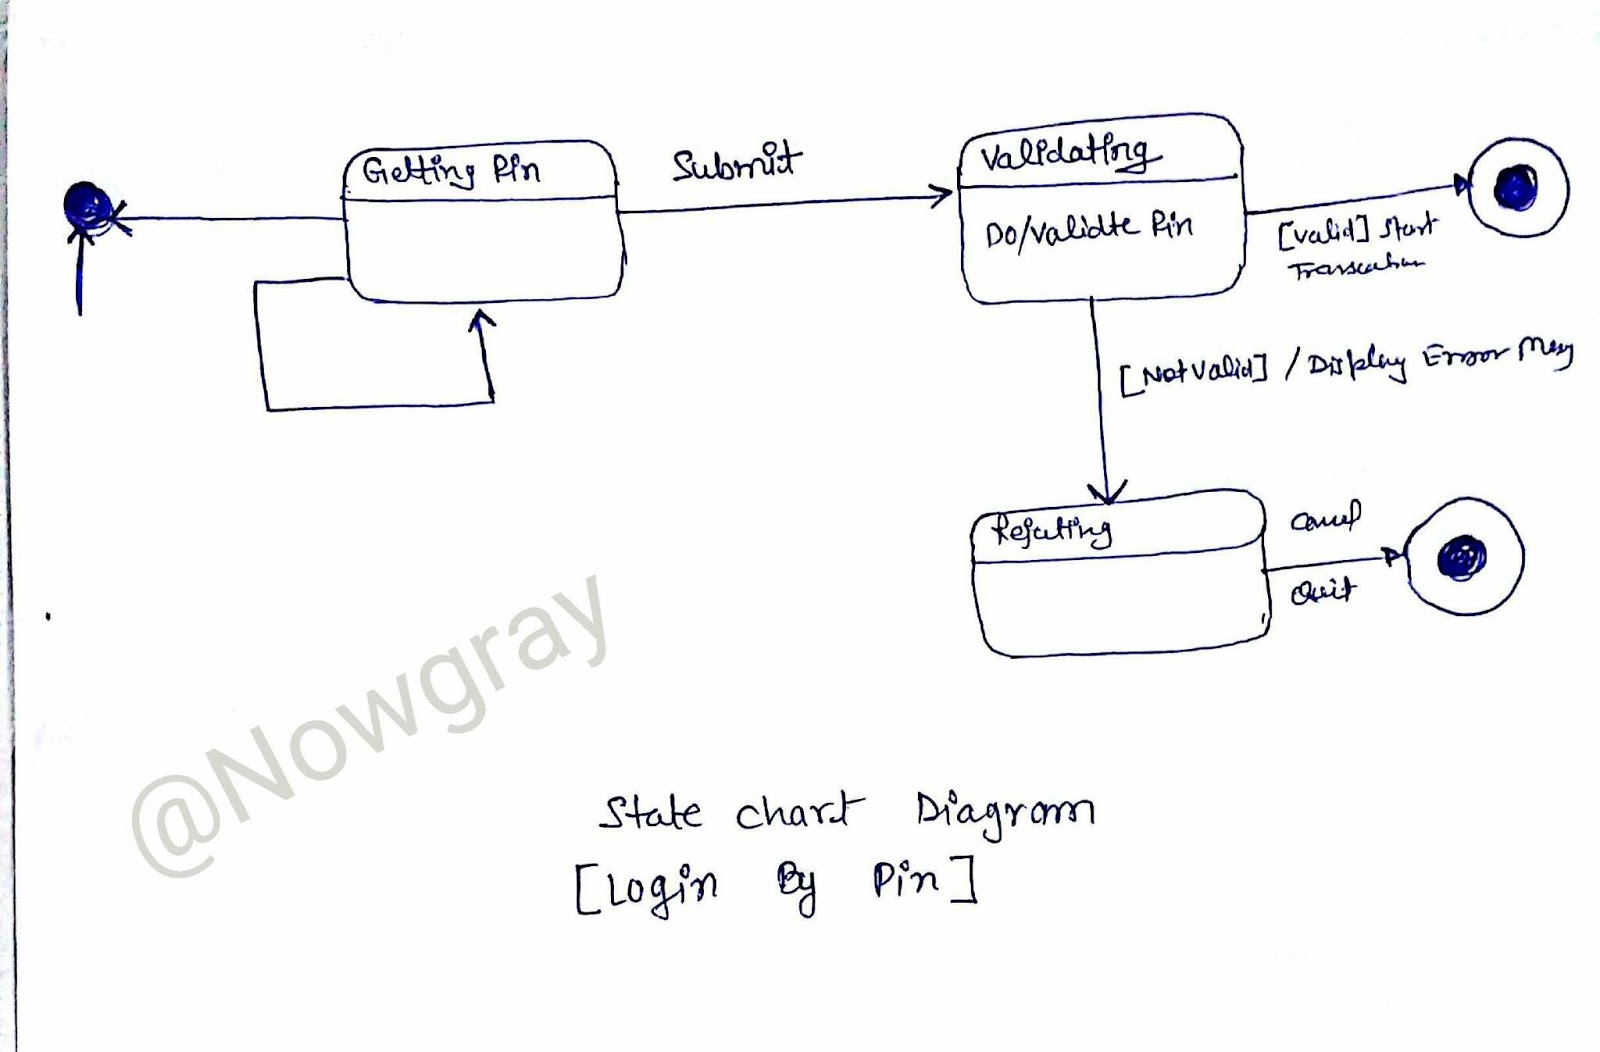 uml state chart diagram examples 1995 club car golf cart wiring mcs032 ng answers ignou group